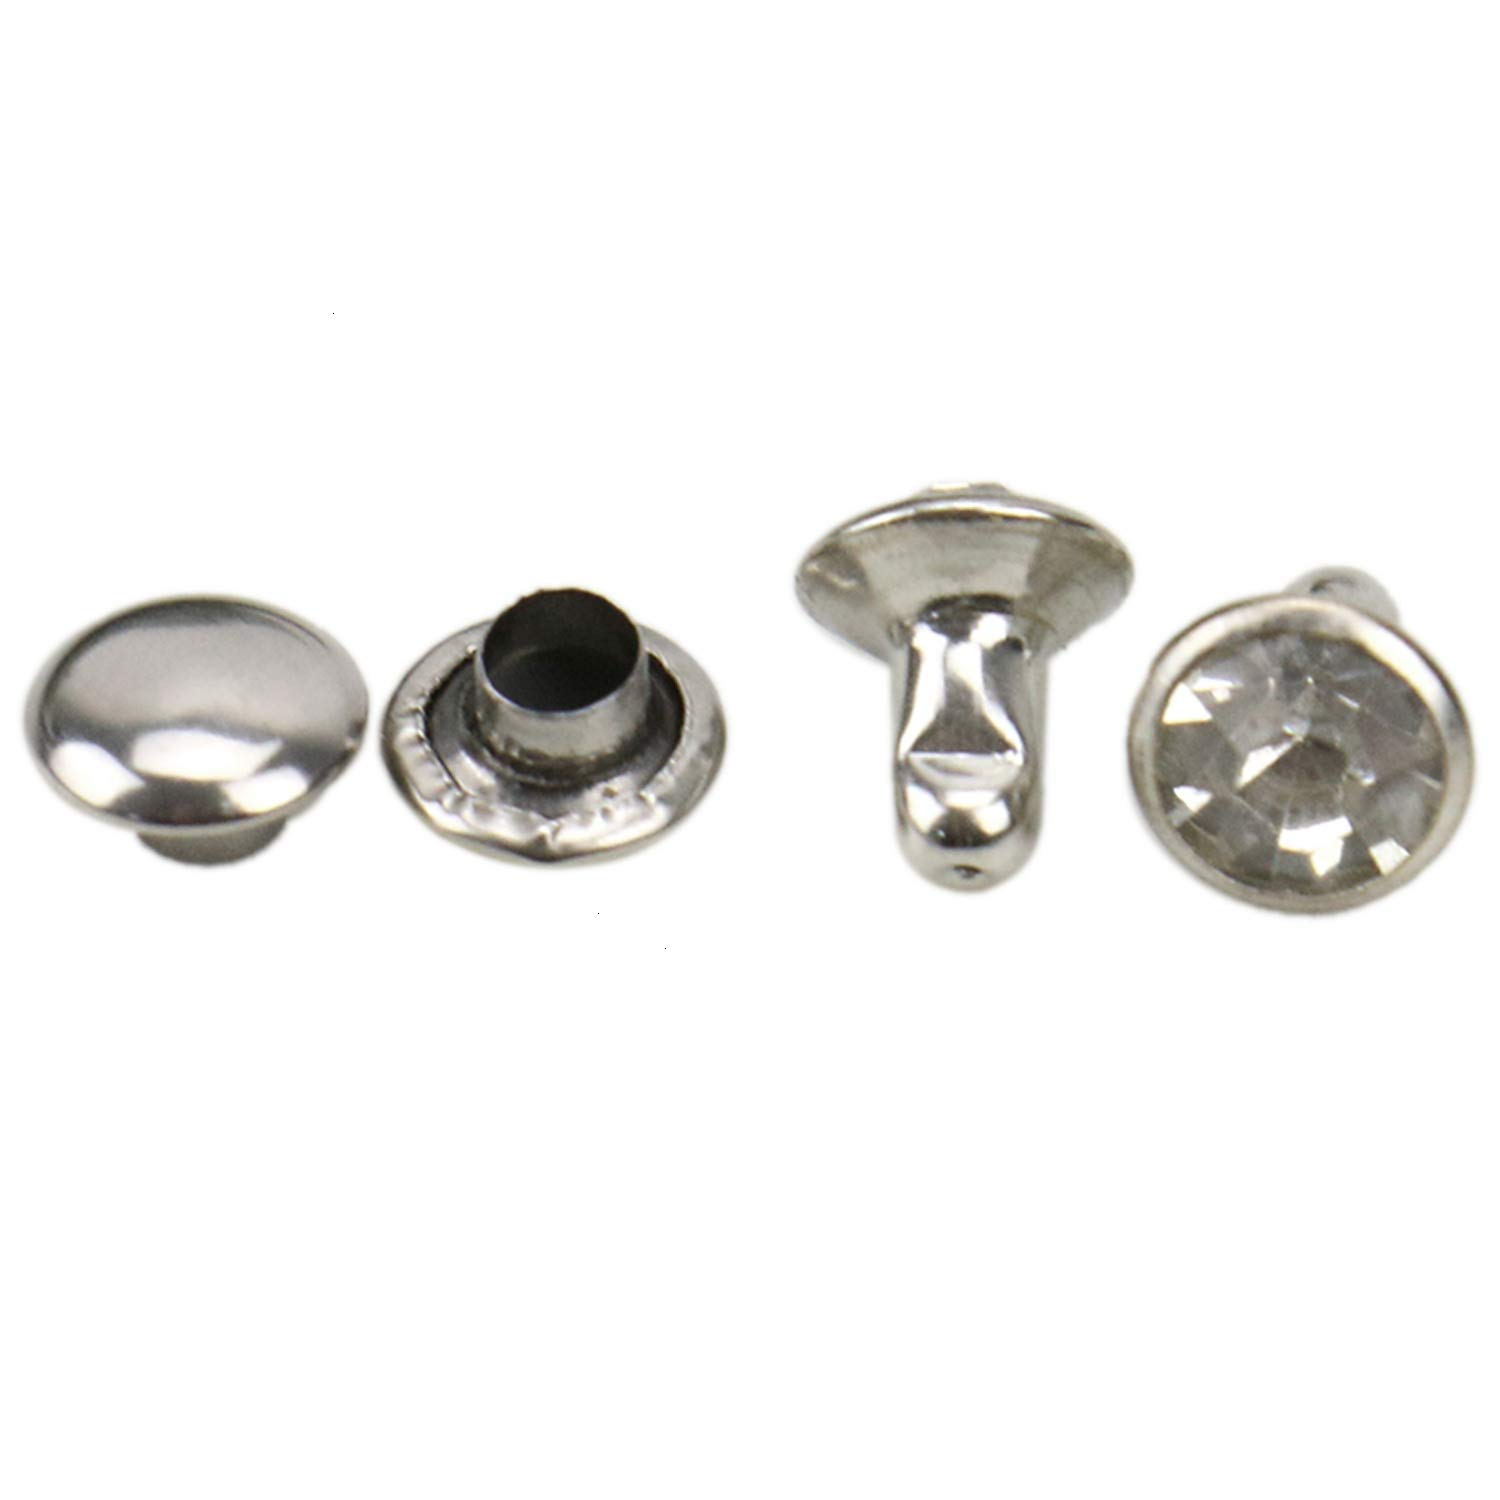 6mm JETEHO 100 Sets Crystal Rapid Rivets Studs Double Cap for DIY Leather Craft Bag